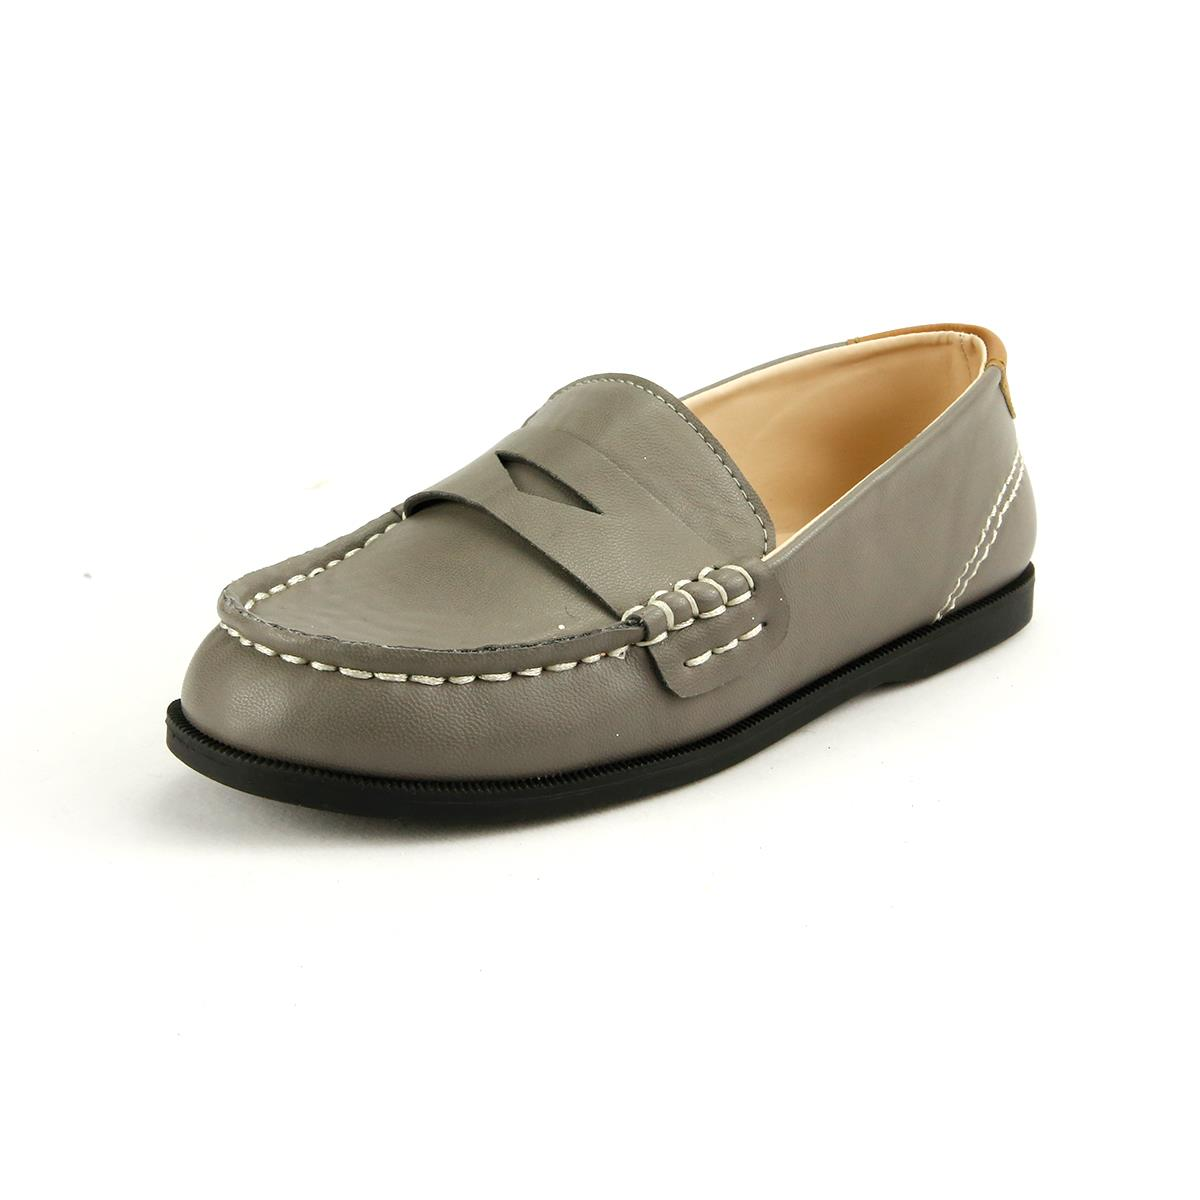 Black And Grey Boat Shoes